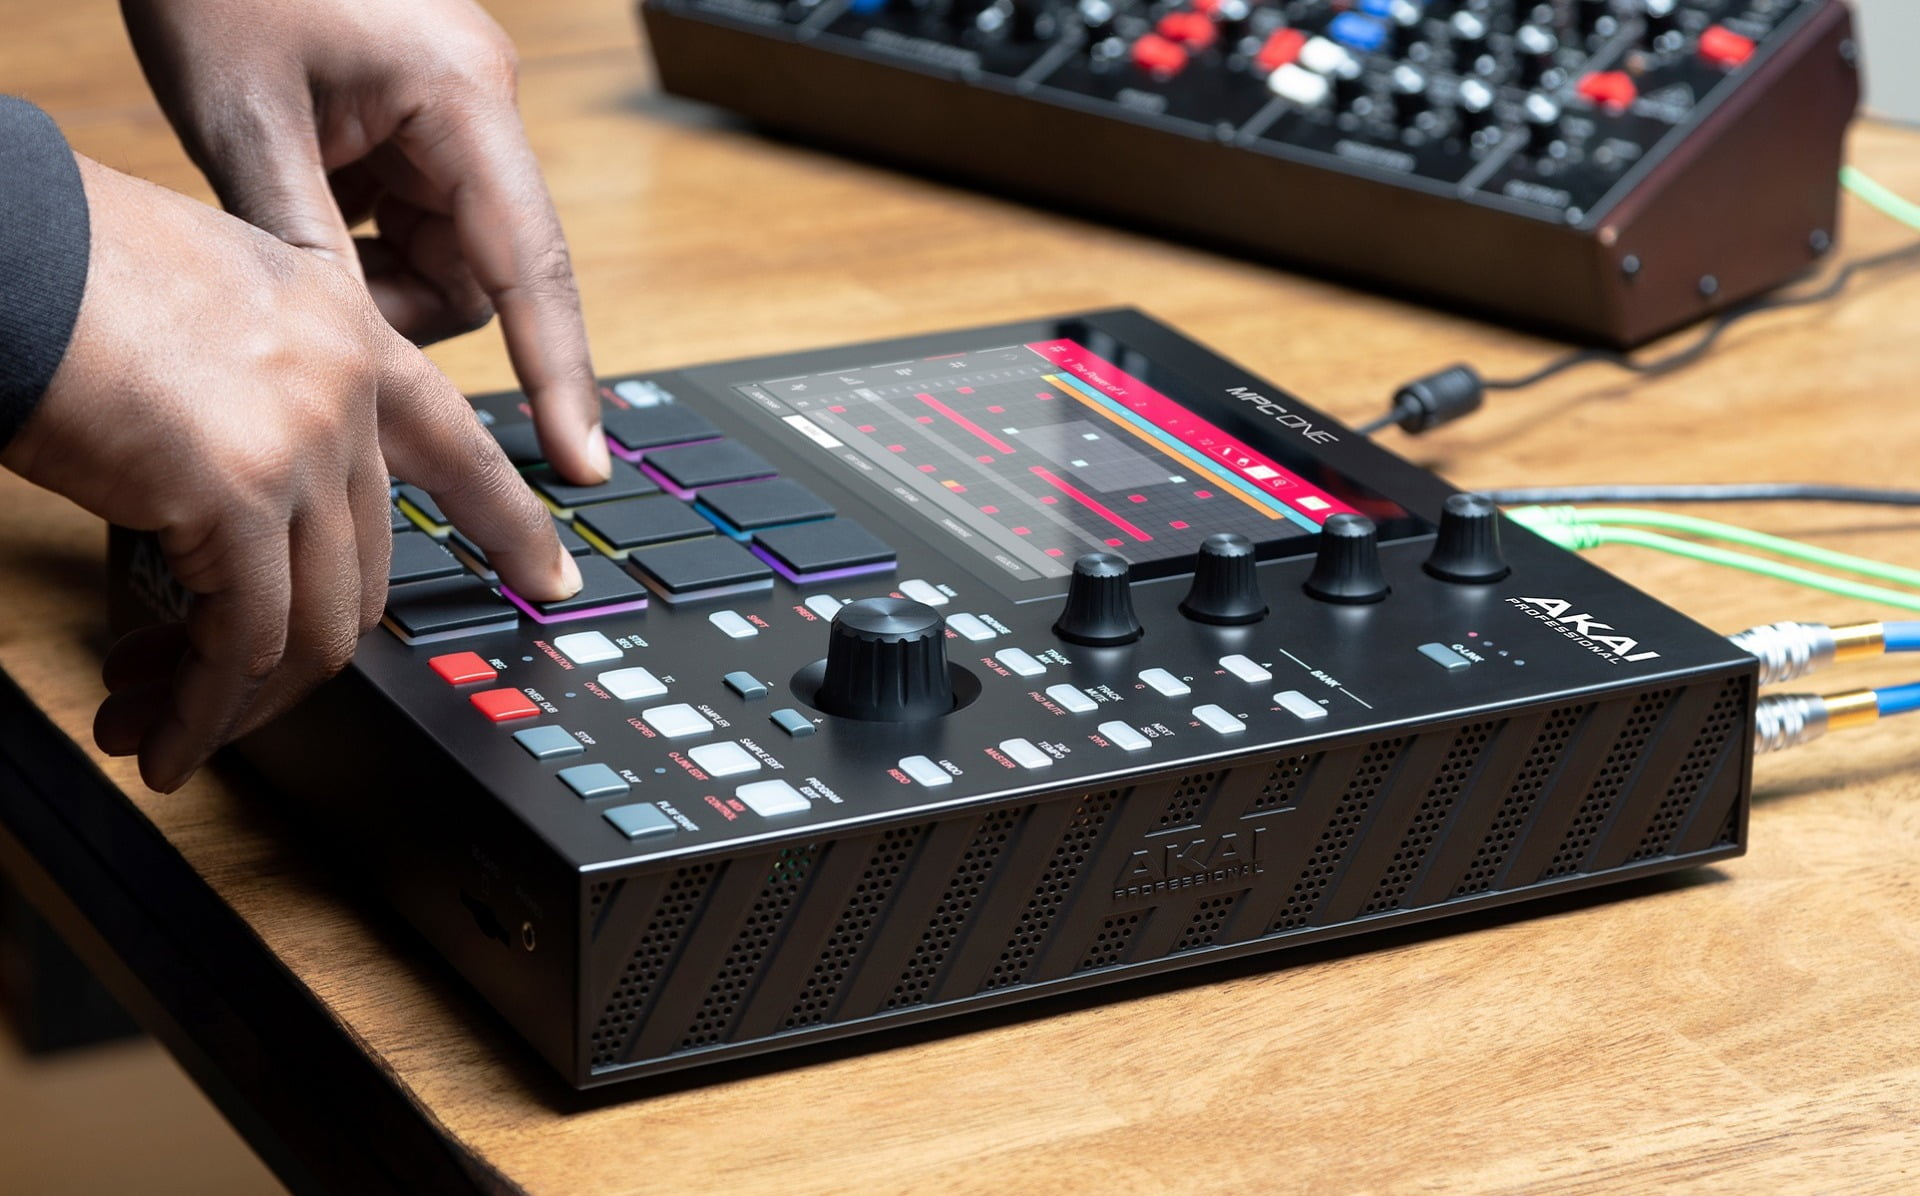 Akai Pro announces MPC One standalone music production solution